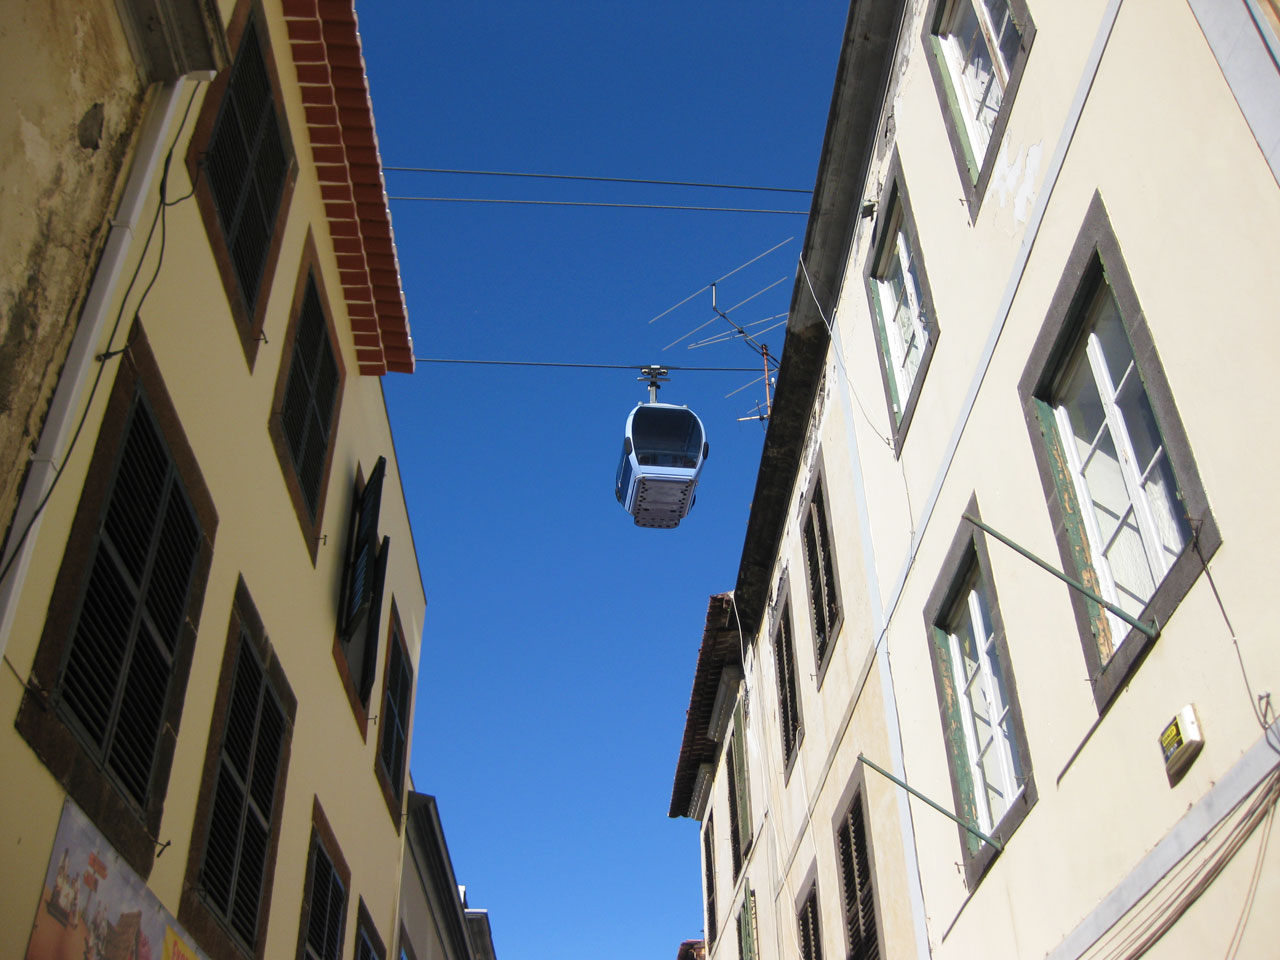 Cable car above the streets of the old town, Funchal, Madeira